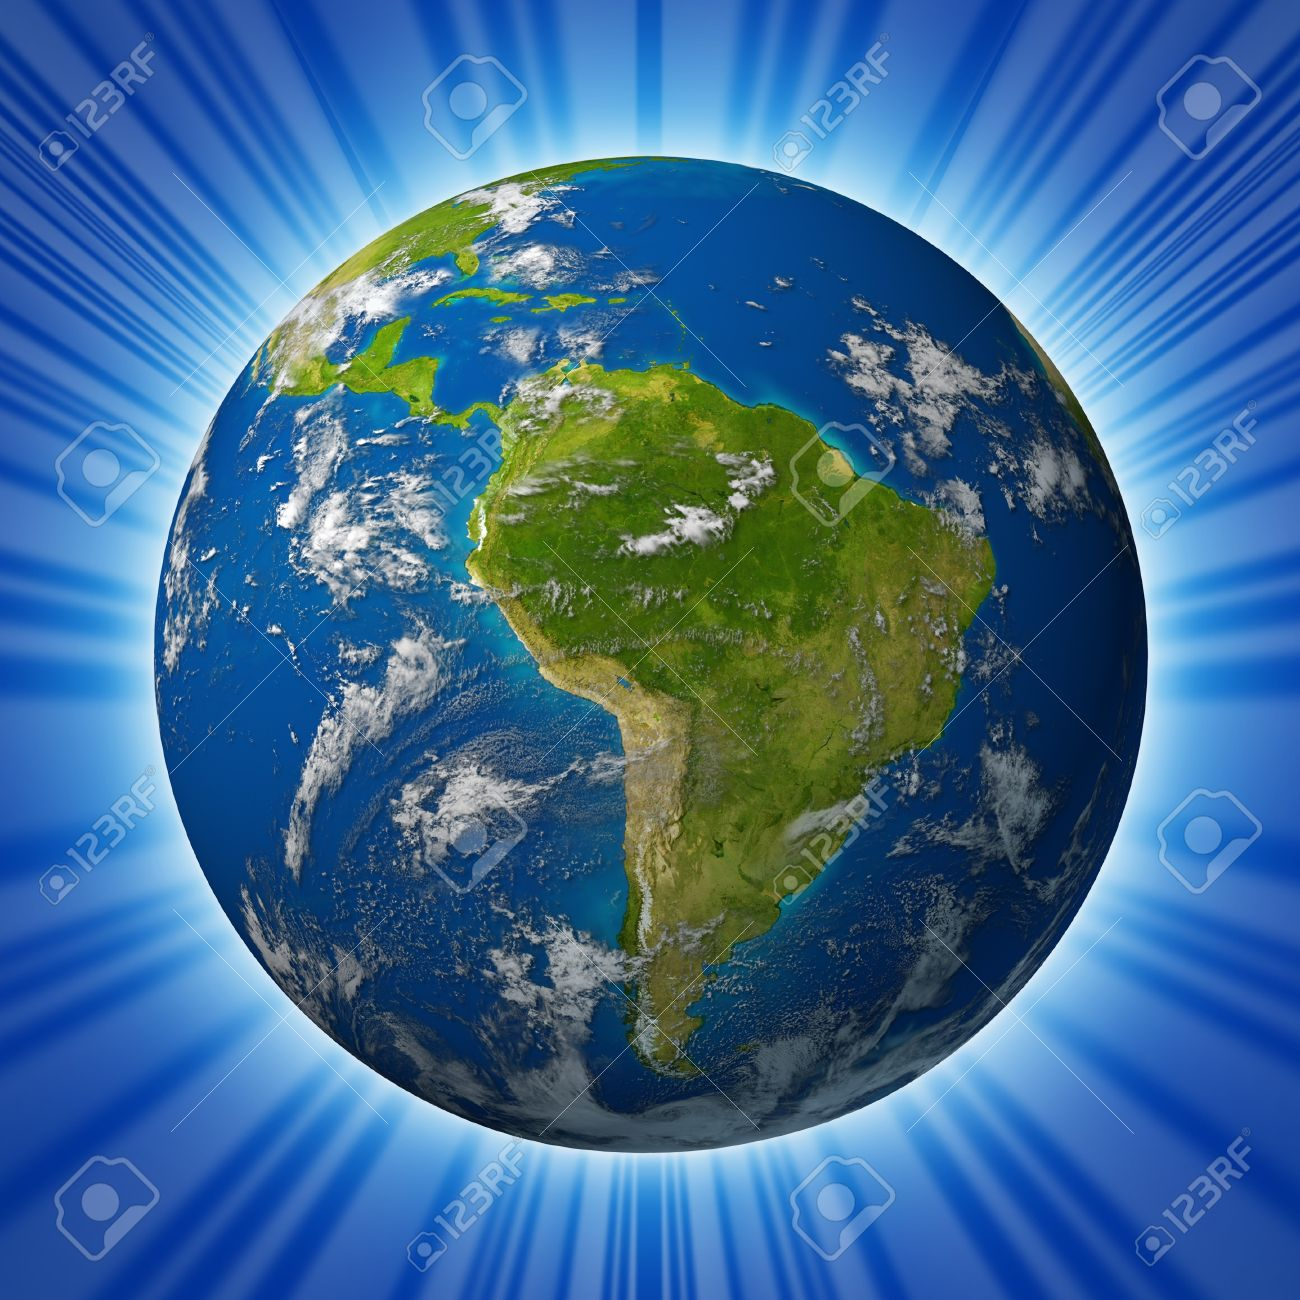 Earth planet featuring South america and latin american countries surrounded by blue ocean and clouds isolated on radial background. Stock Photo - 10909987